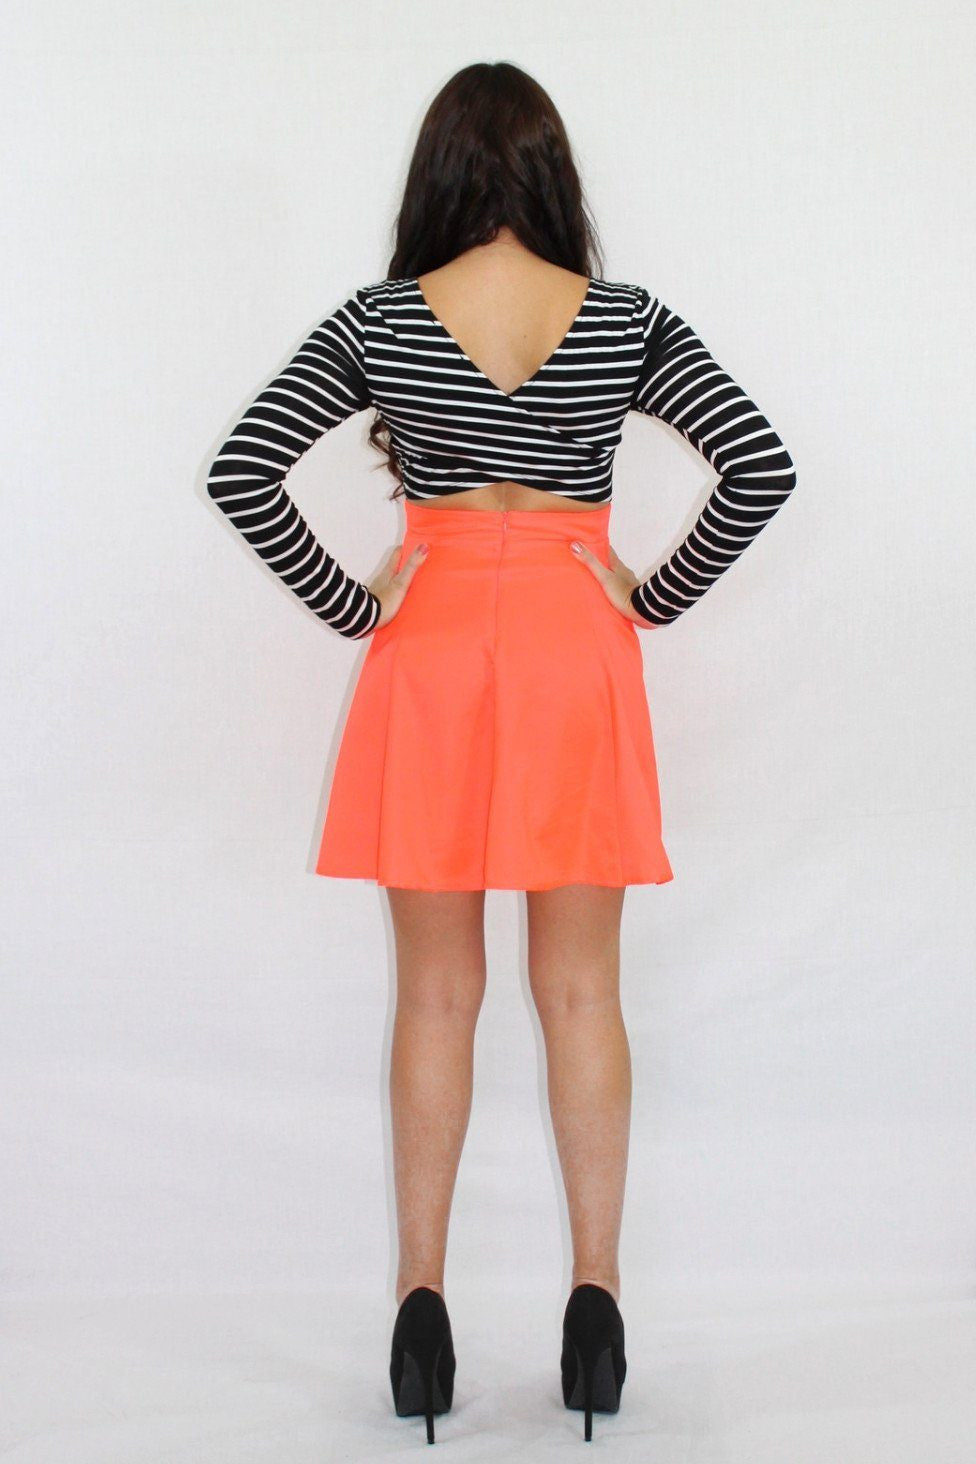 Double Take Striped Neon Dress - The Laguna Room